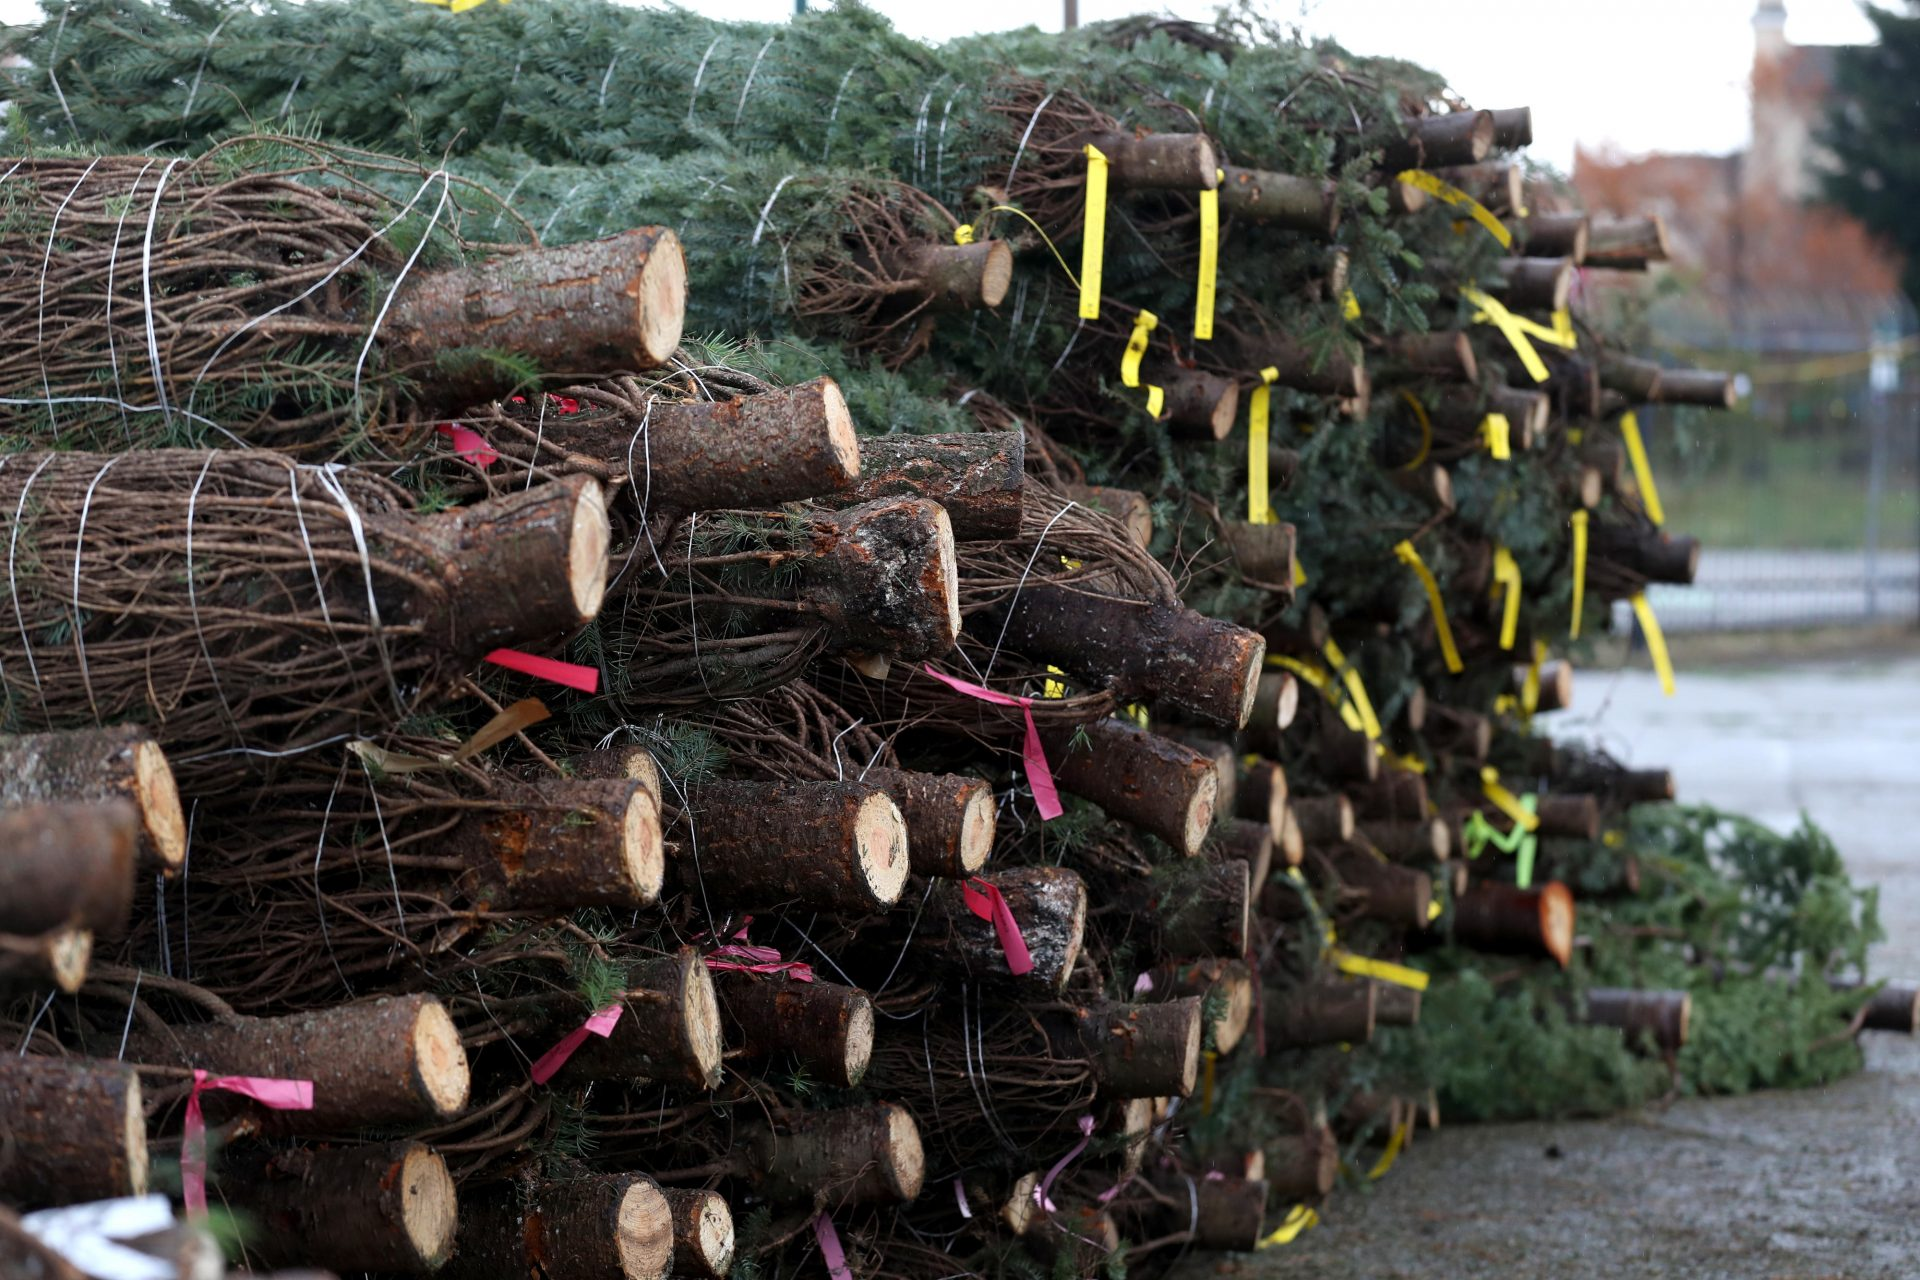 A stack of Christmas trees - which will be in short supply this year. Photograph: Getty Images.